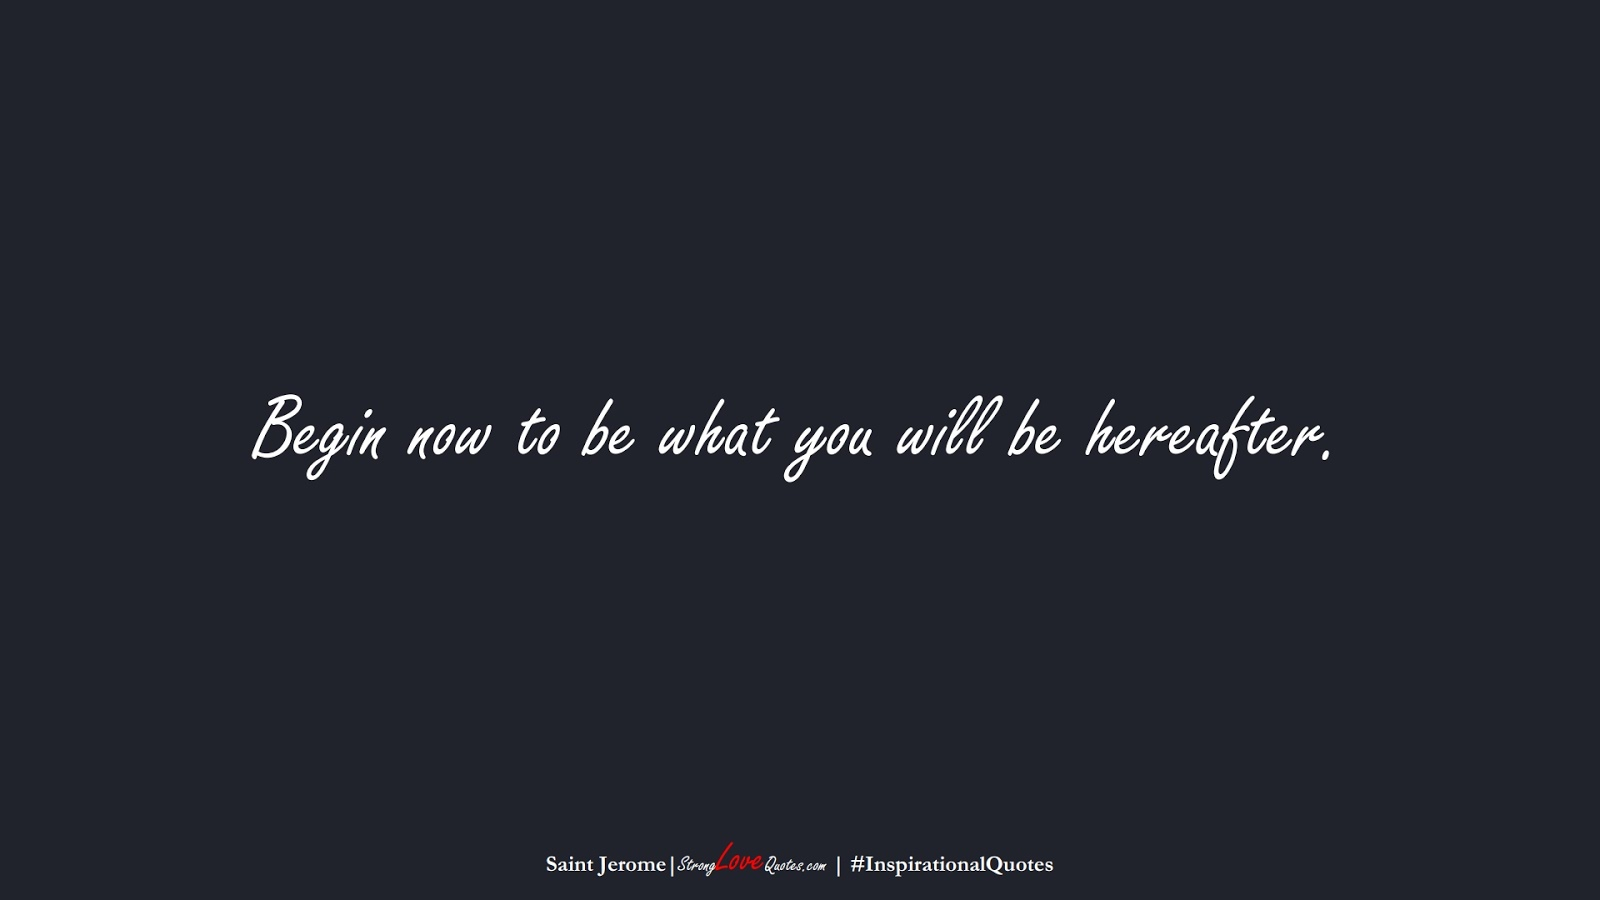 Begin now to be what you will be hereafter. (Saint Jerome);  #InspirationalQuotes